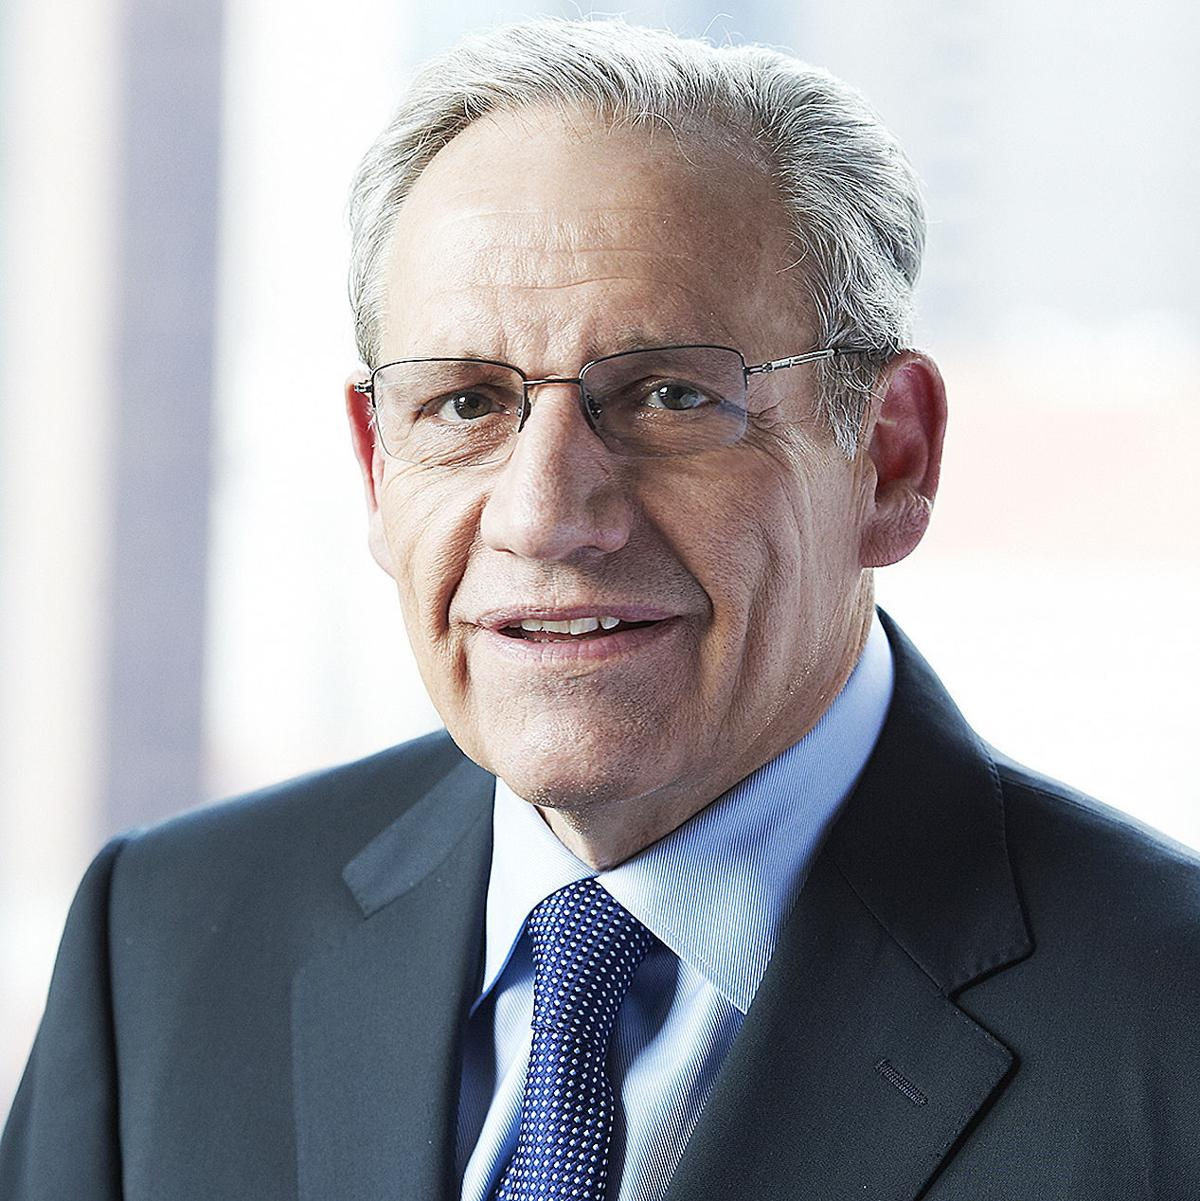 Reporter Bob Woodward Will Present 'the Age Of The. Solar Power Advantages Scheduled Task Manager. Chance Of Pregnancy After Vasectomy. Cheap Rental Cars In Germany. Contraception After Delivery. Reverse Mortgage Lenders Florida. Va Loan Mortgage Payment Calculator. International Business Loans. Drain Cleaning Huntington Beach